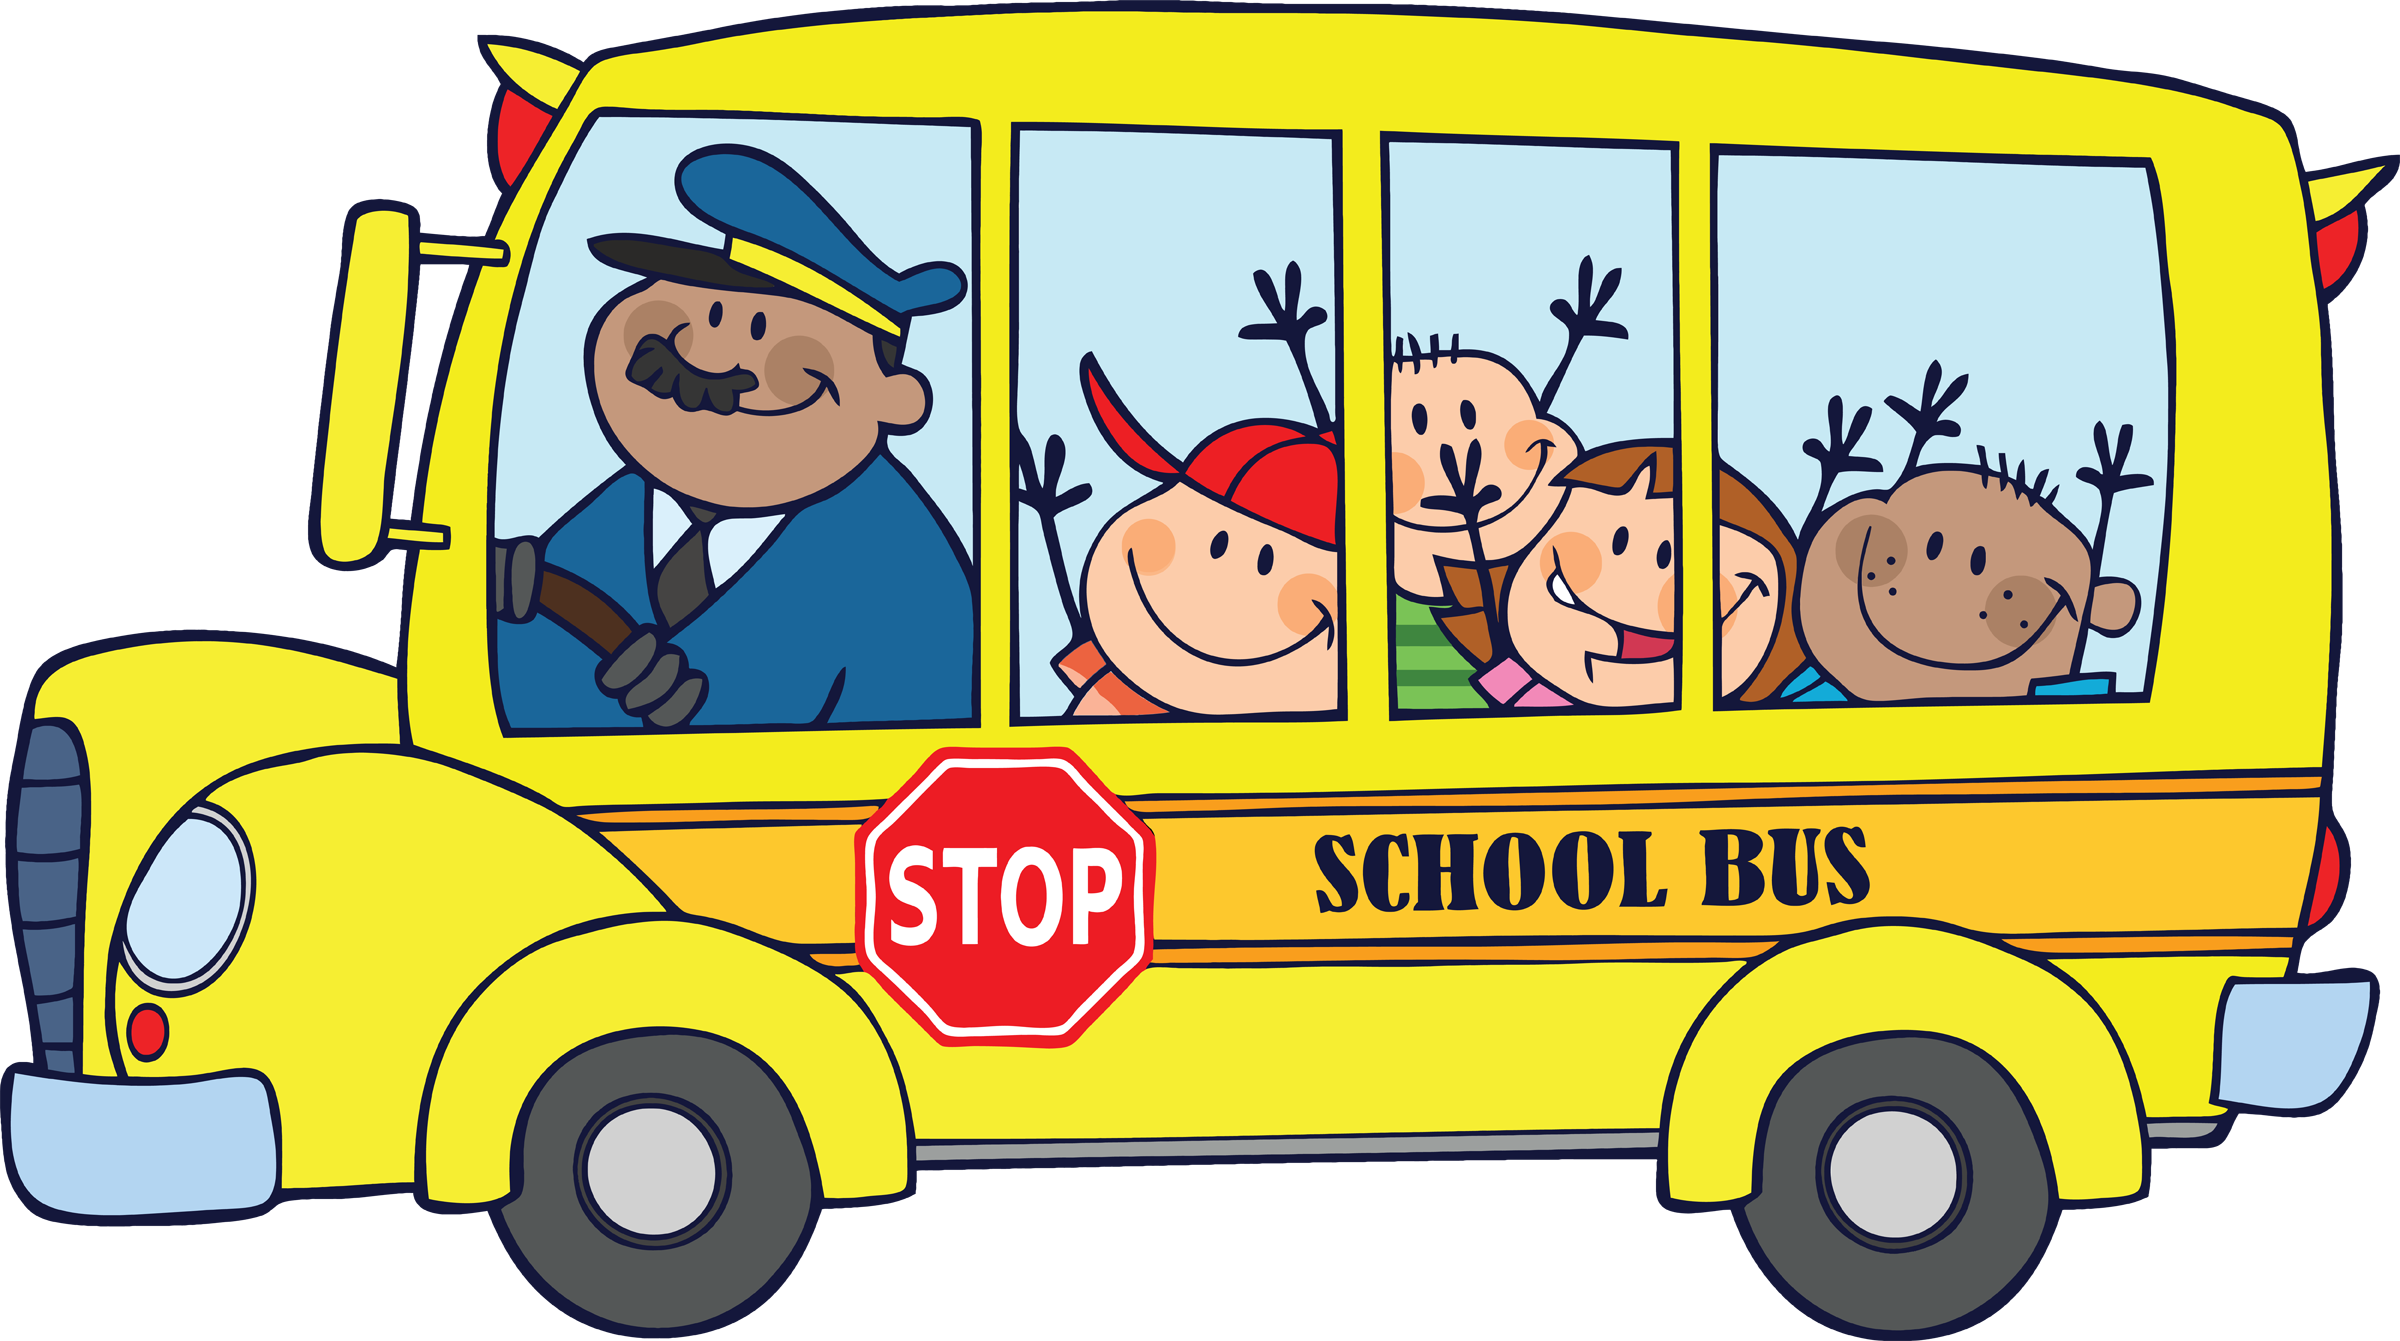 school bus driver quotes clipart panda free clipart images rh pinterest com School Bus Clip Art Moving Train Wheels Clip Art